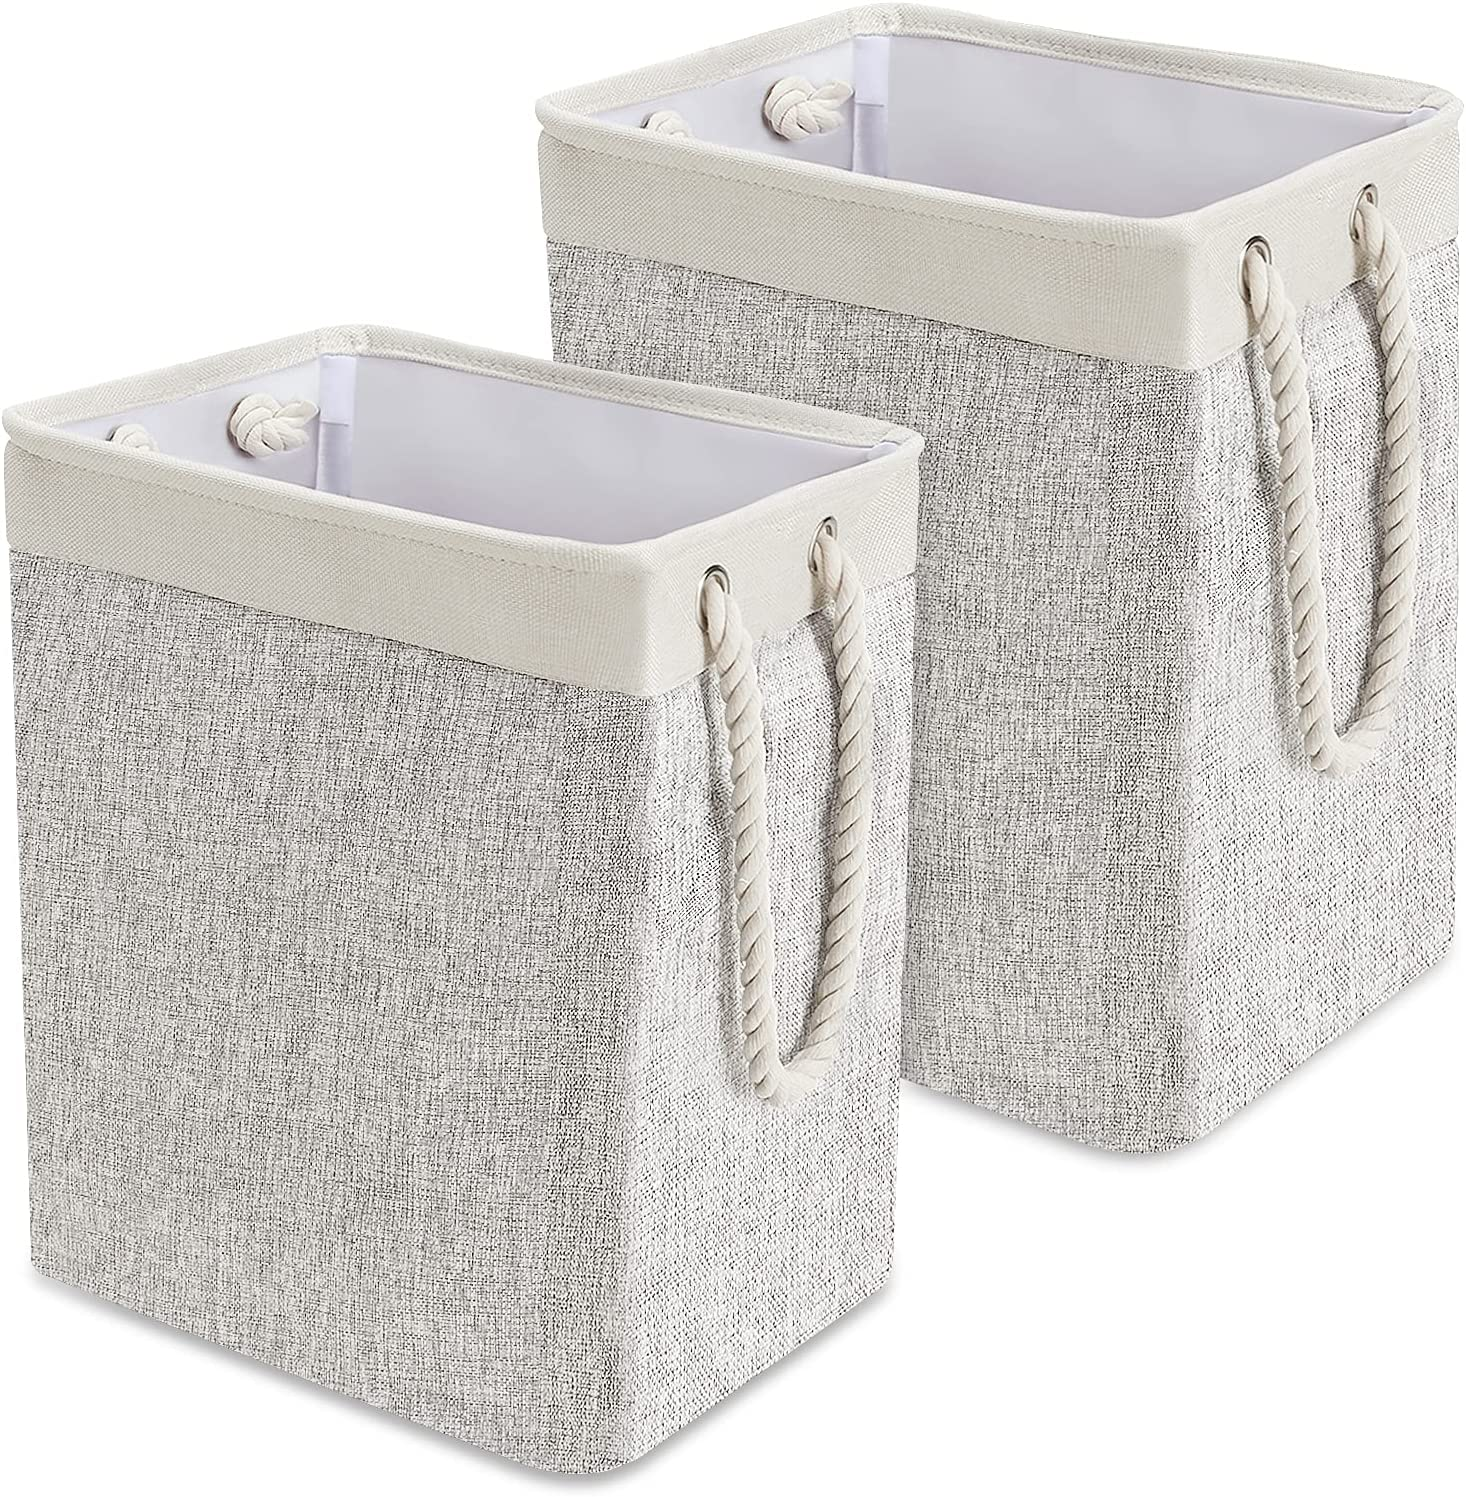 Foldable Laundry Basket with Rope Handles C Pack Cheap sale 2 Financial sales sale Tall QooWare